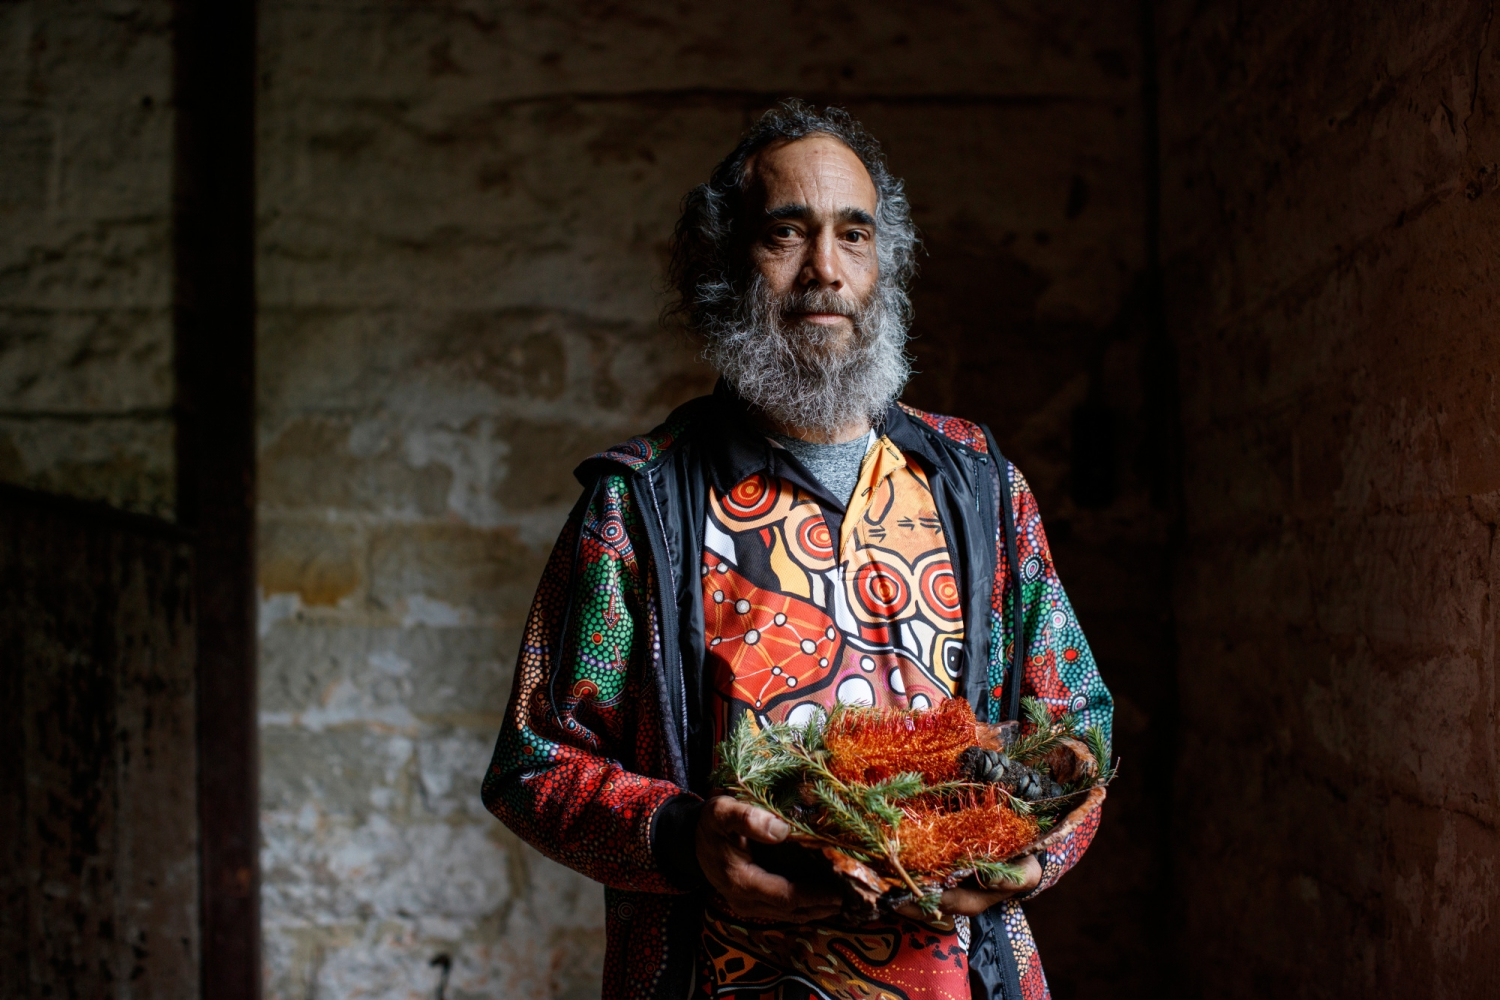 Man in colourful patterned shirt.